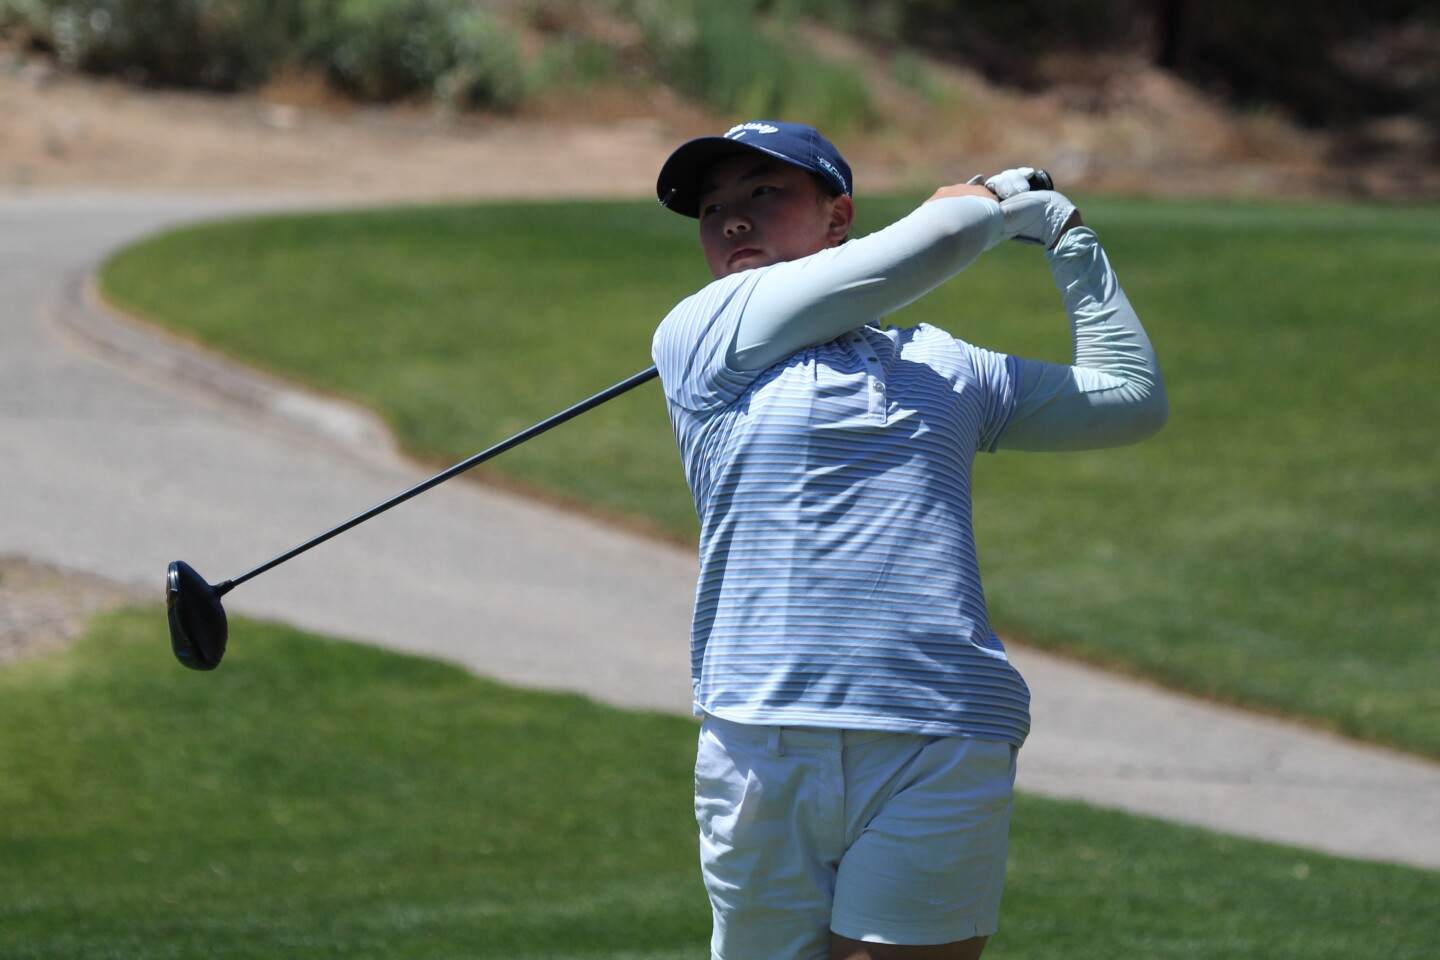 Fiona Xu leads by two after first round